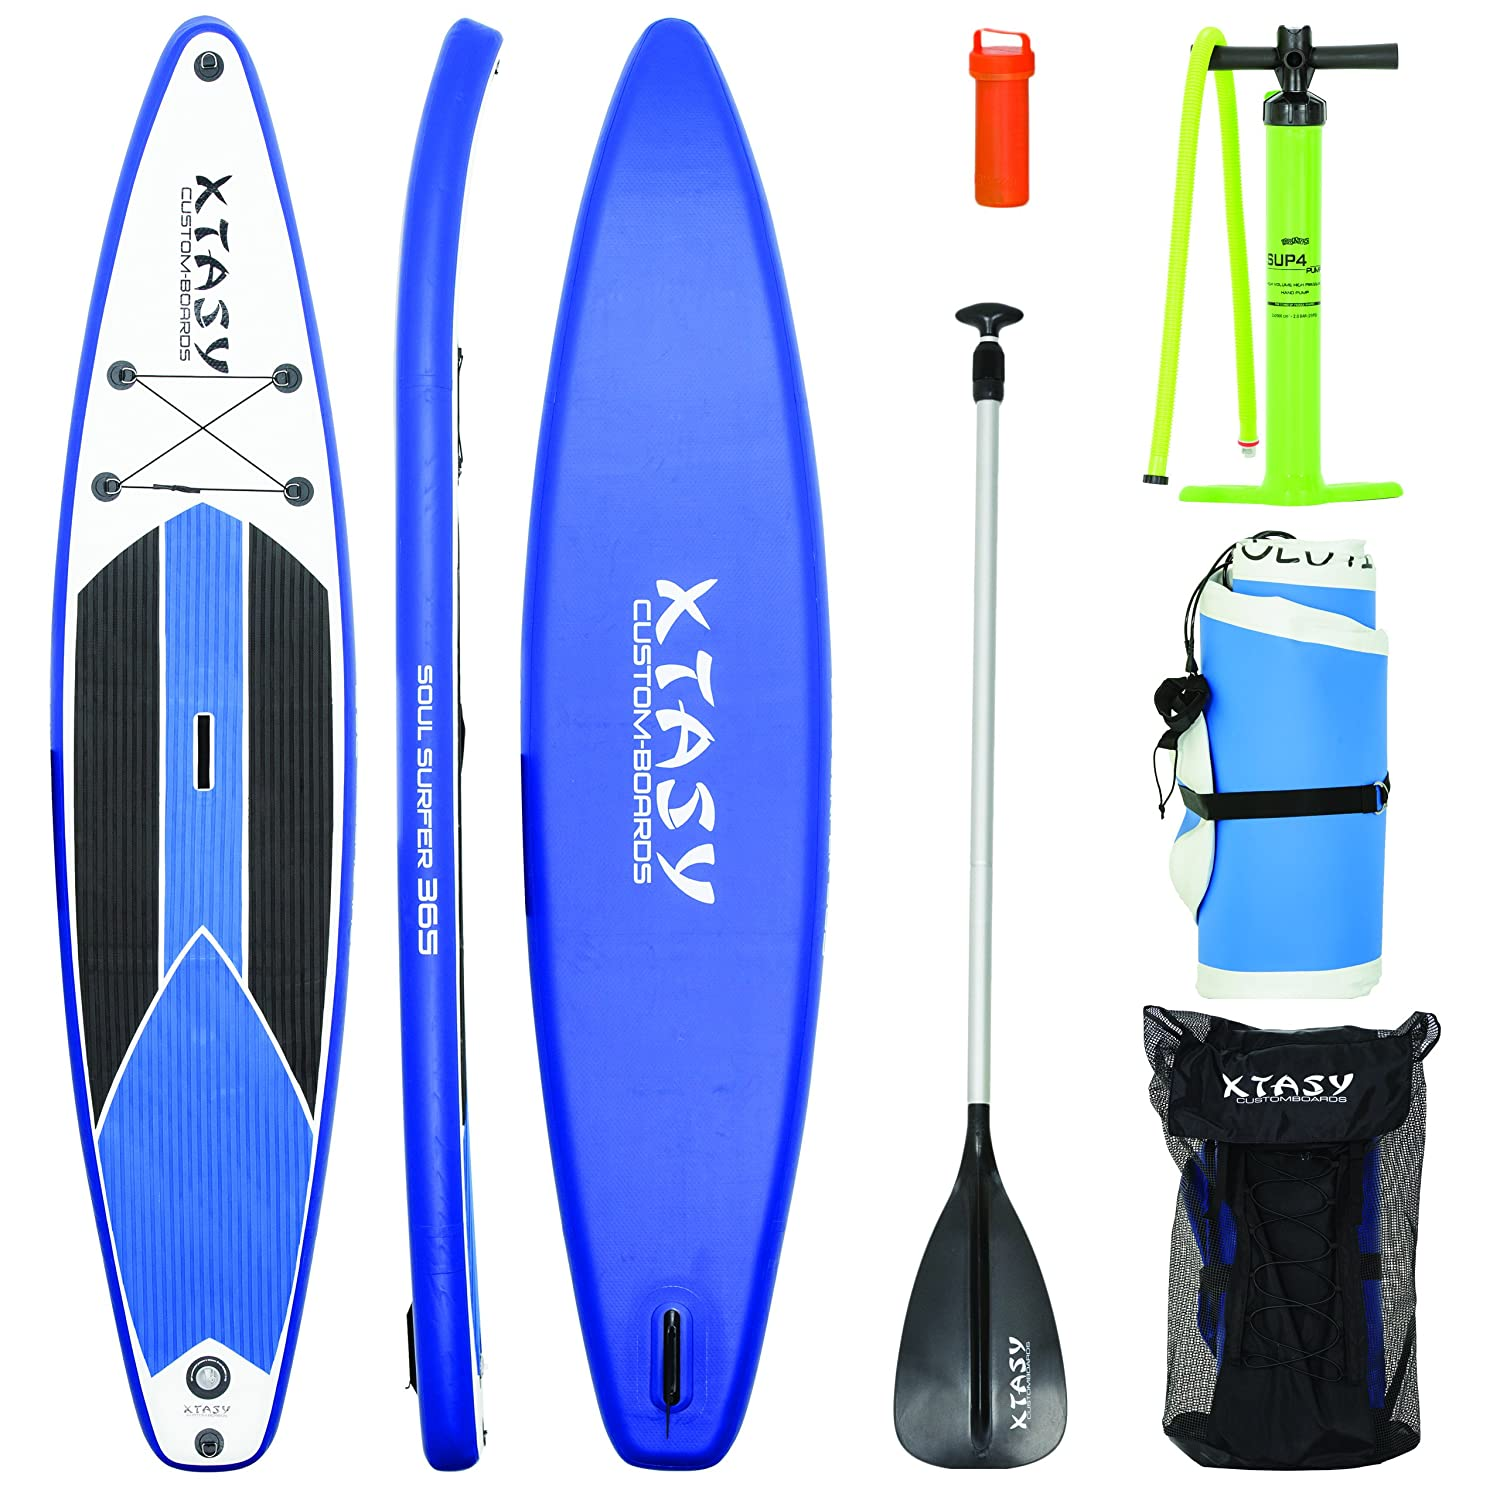 XtasY ISUP Soul Surfer 365 Juego Standup paddleb oard: Amazon.es: Deportes y aire libre